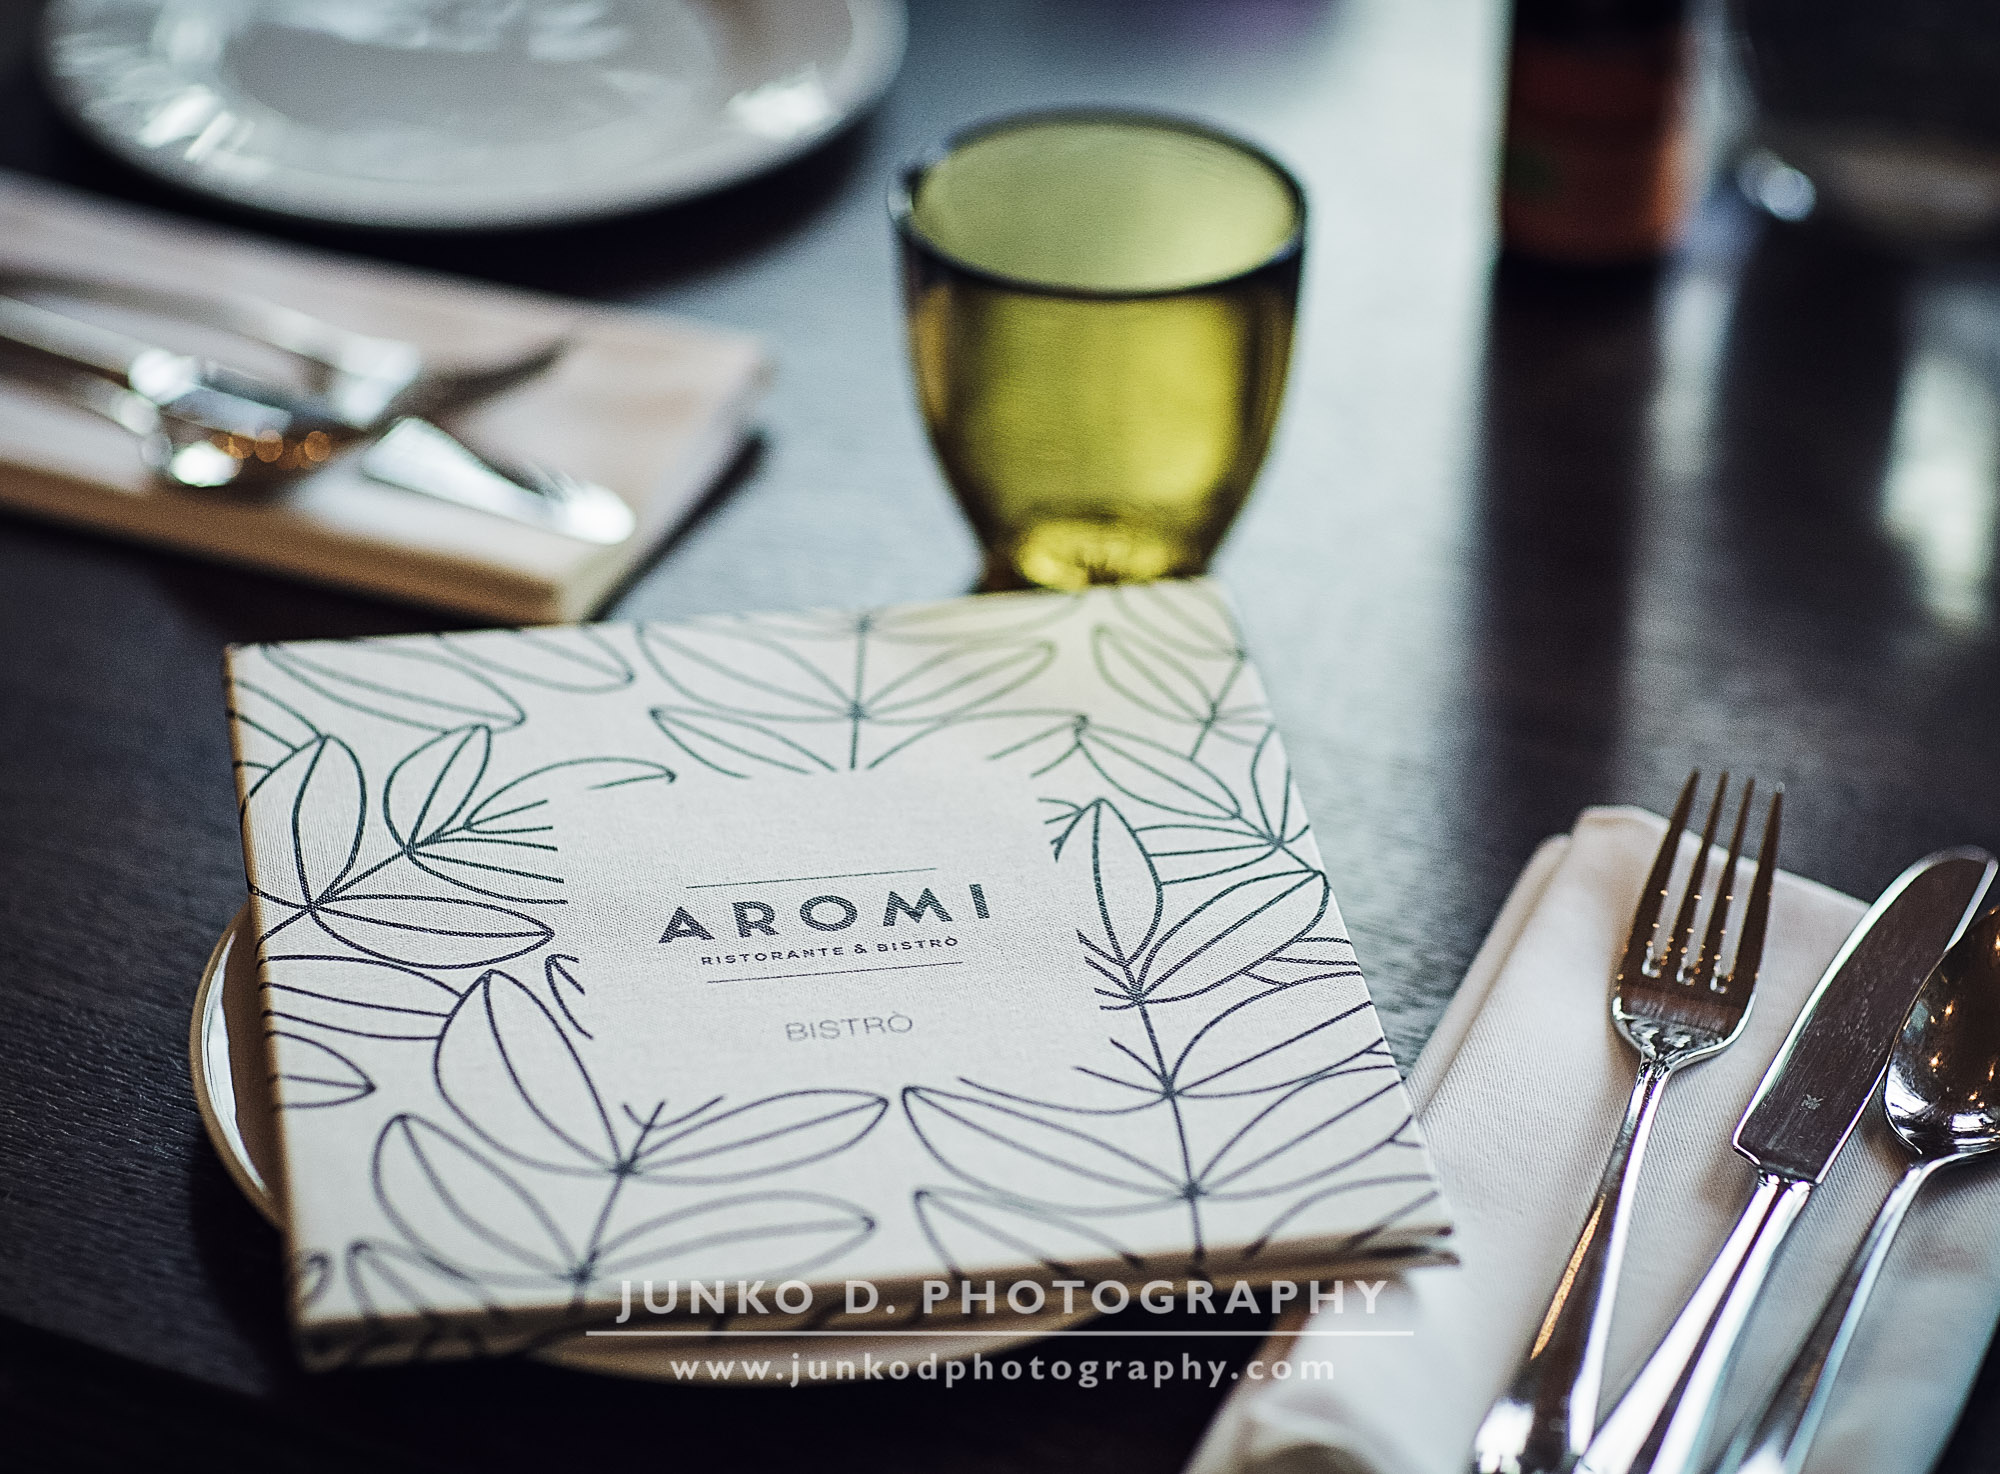 Aromi • corporate photography